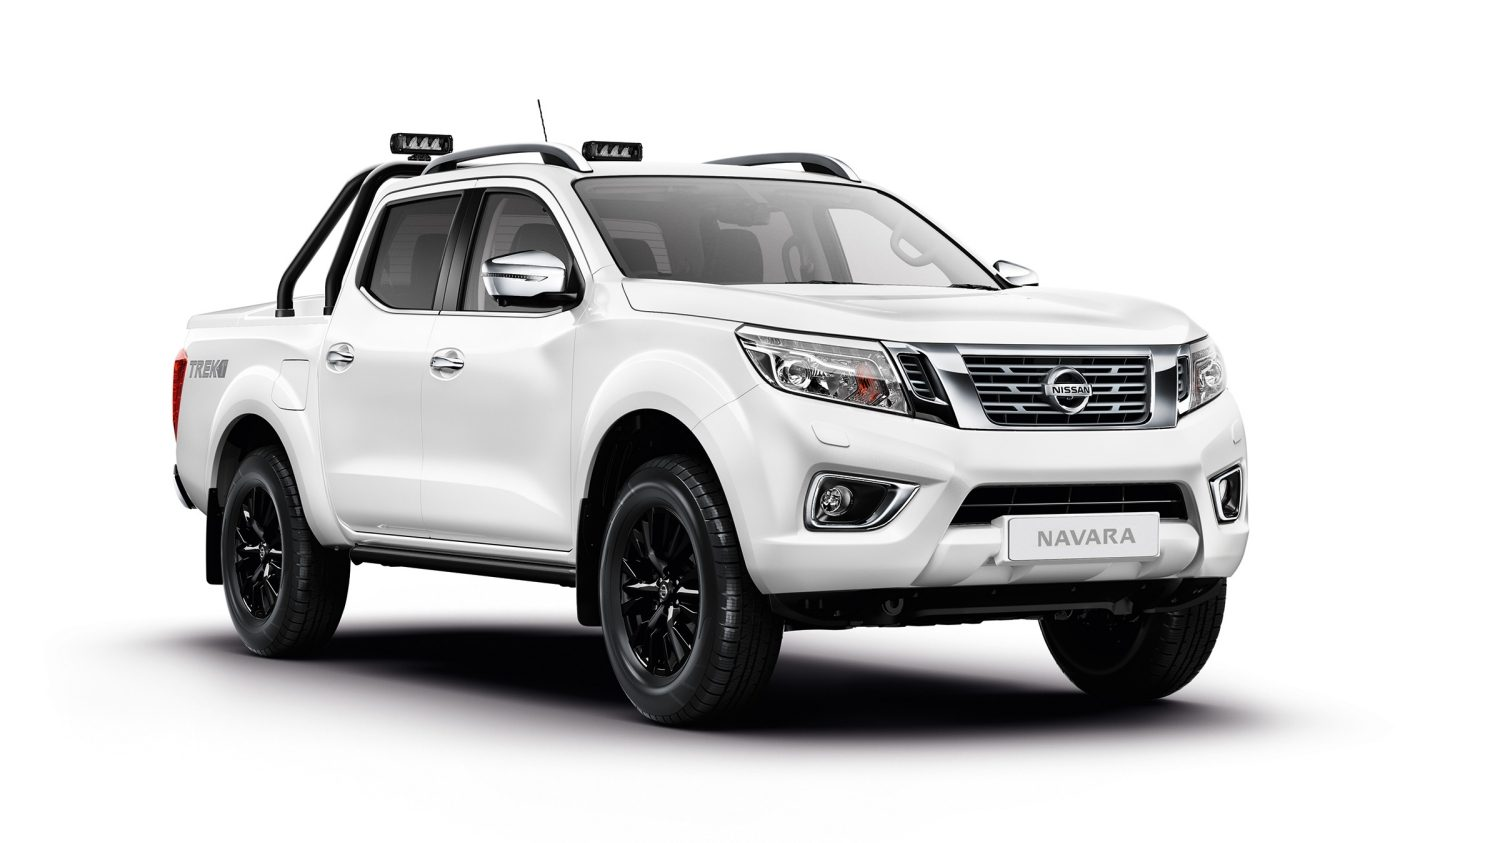 special version nissan navara pick up truck 4x4 nissan. Black Bedroom Furniture Sets. Home Design Ideas